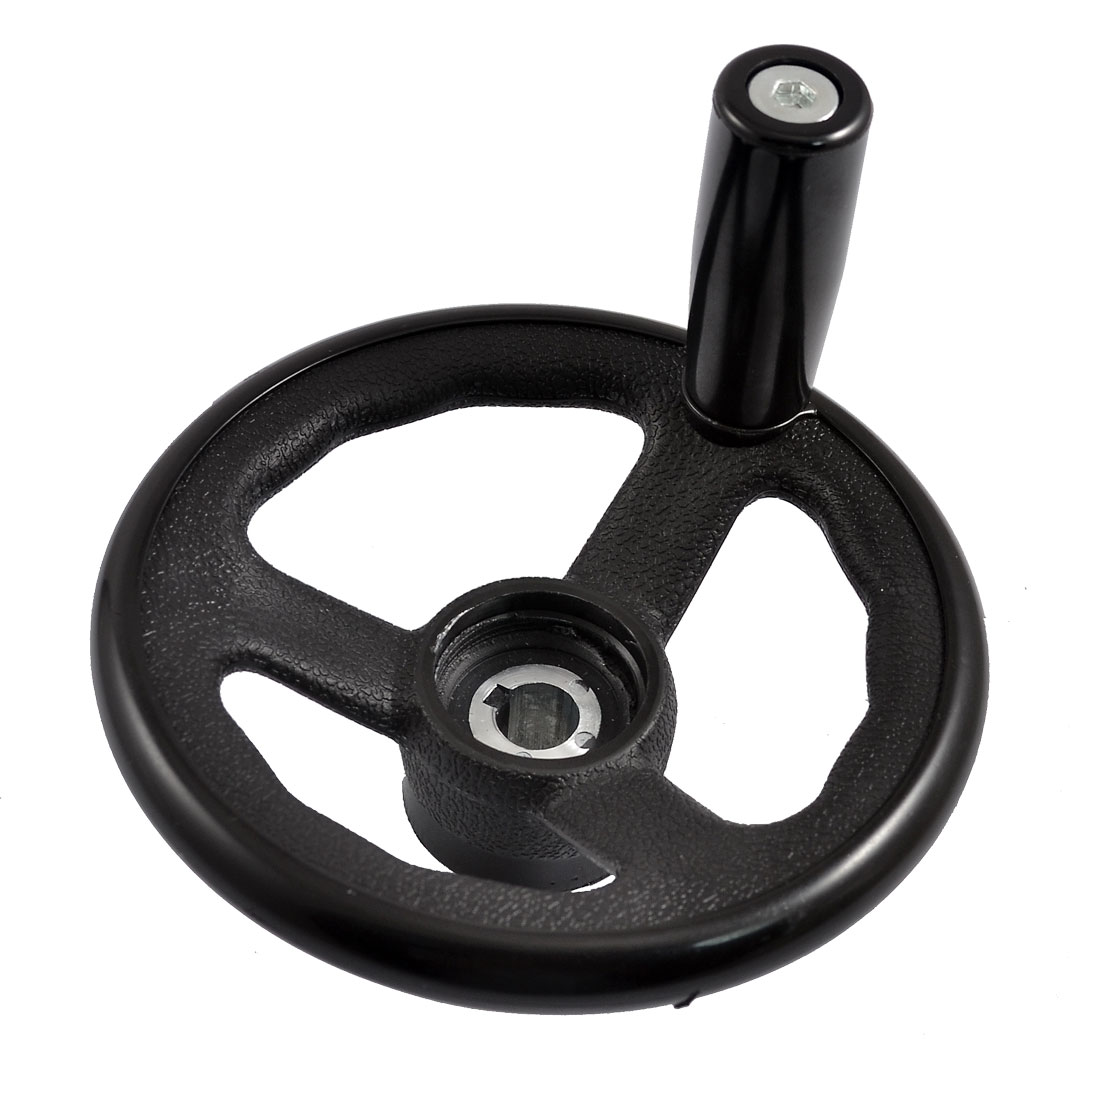 "Black 4.9"" Diameter Milling Machine Hand Wheel w Revolving Handle"